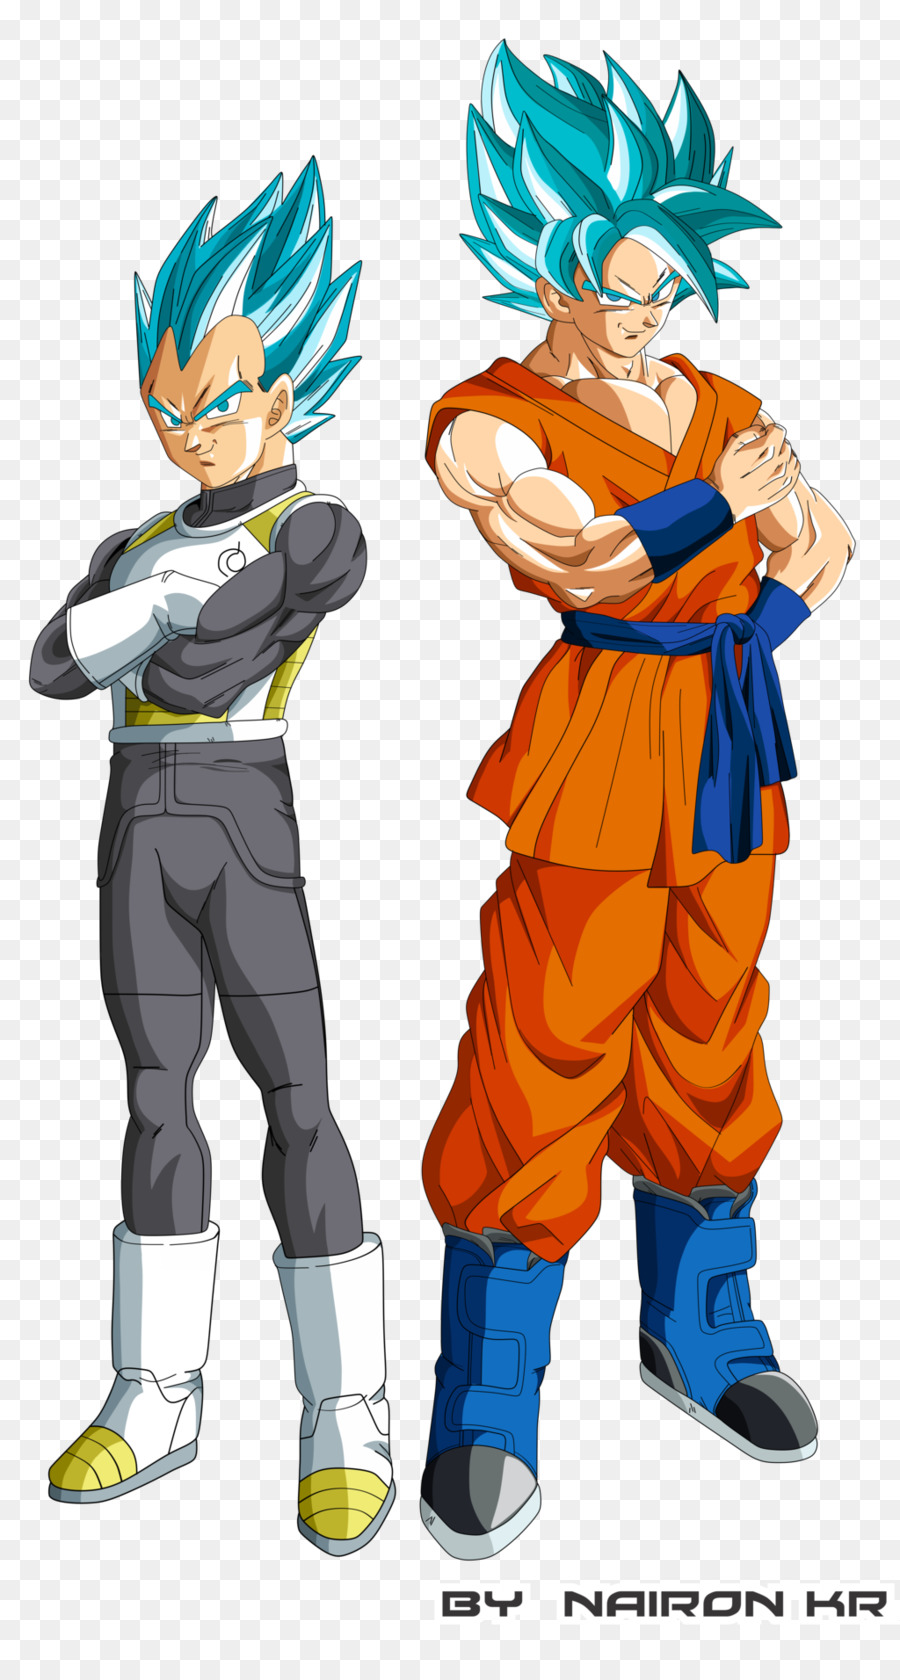 Goku Vegeta Gohan Frieza Dragon Ball Dragon Ball Super